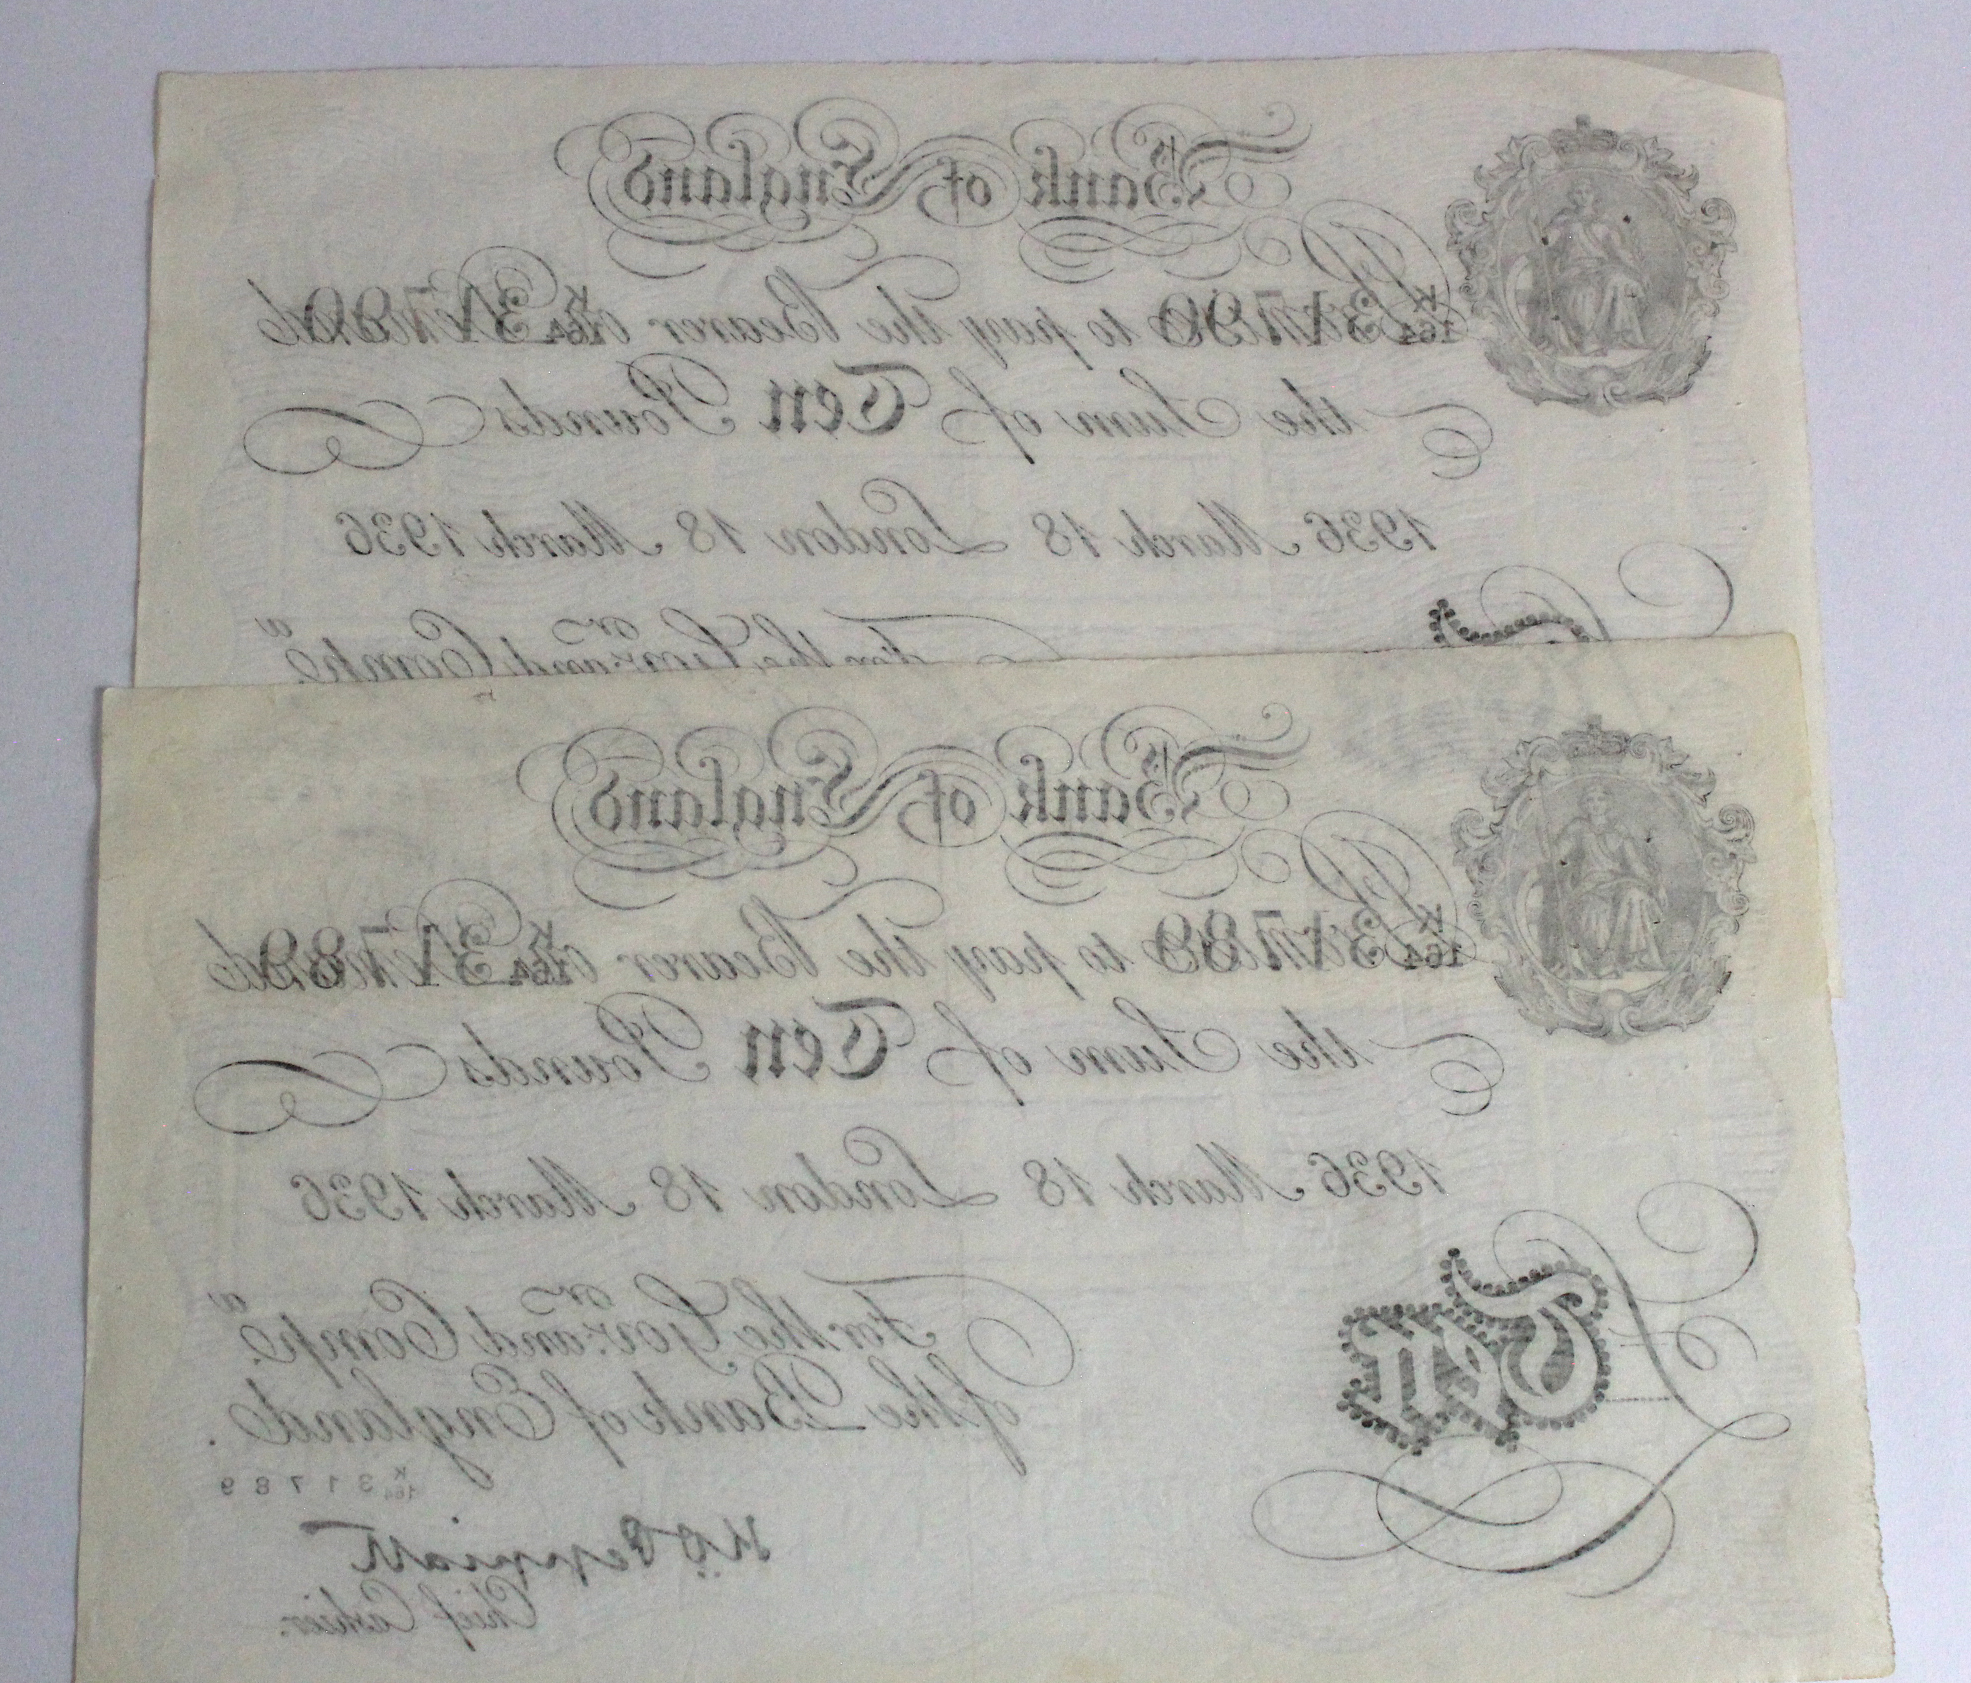 Peppiatt BERNHARD note (2), 10 Pounds dated 18th March 1936, a very RARE consecutively numbered - Image 2 of 2